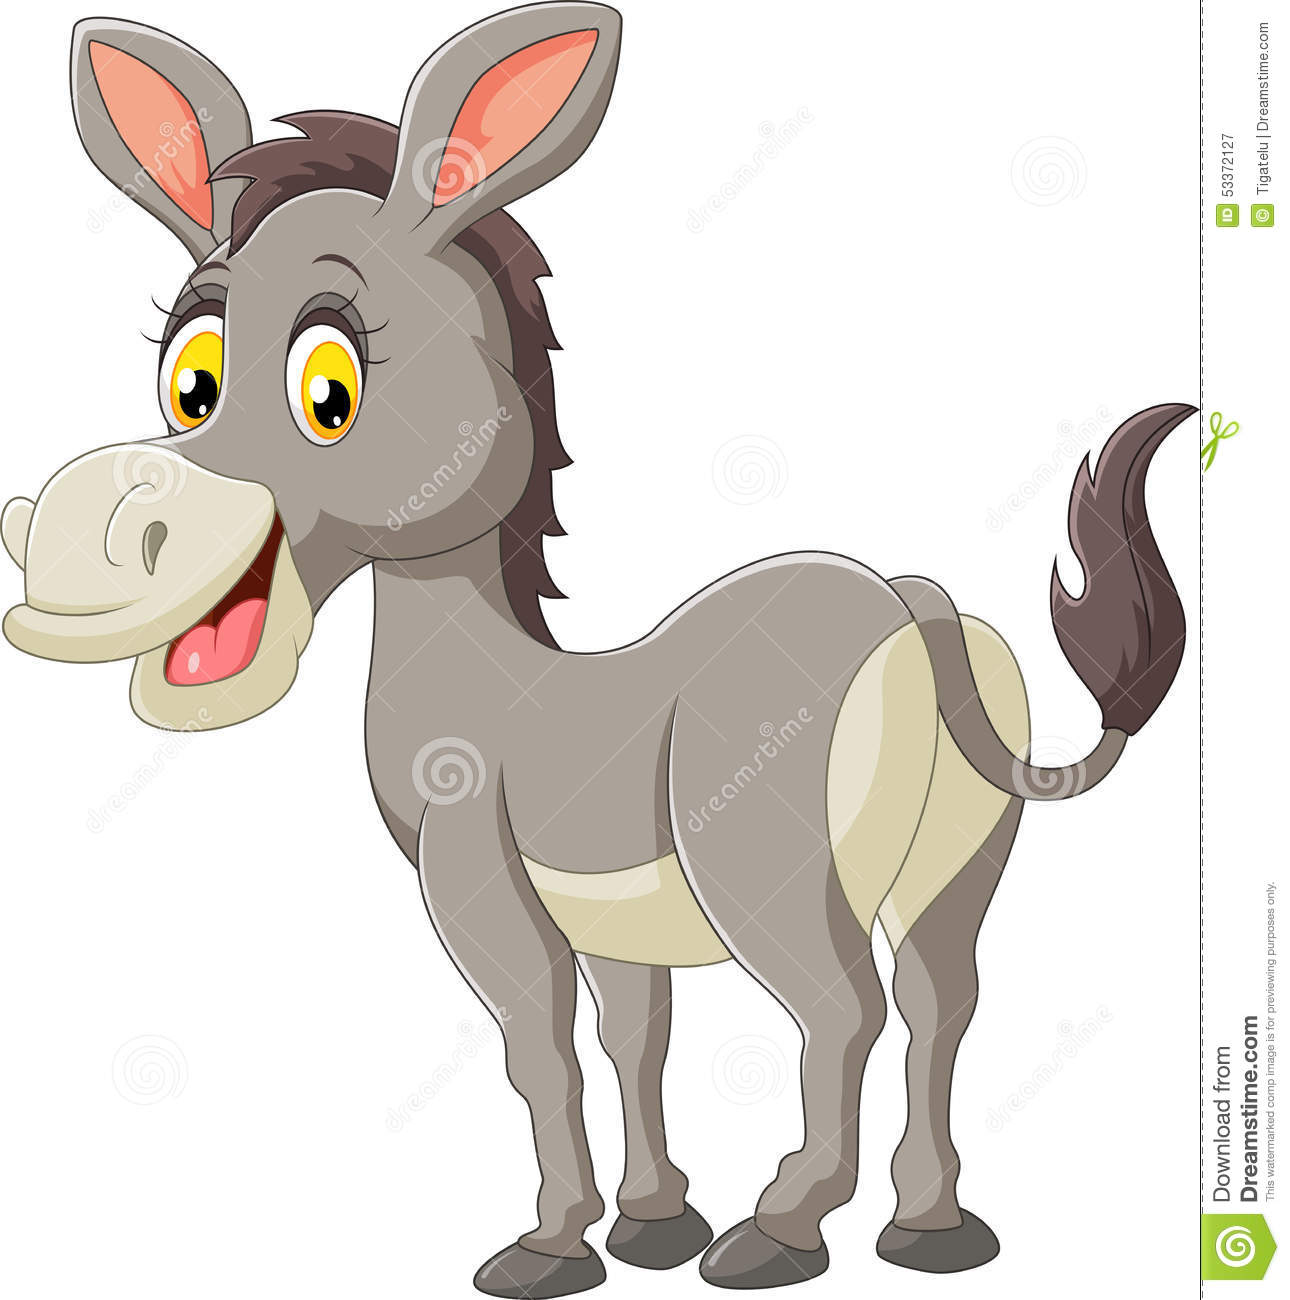 Cartoon Donkey Happy Stock Vector. Illustration Of Funny